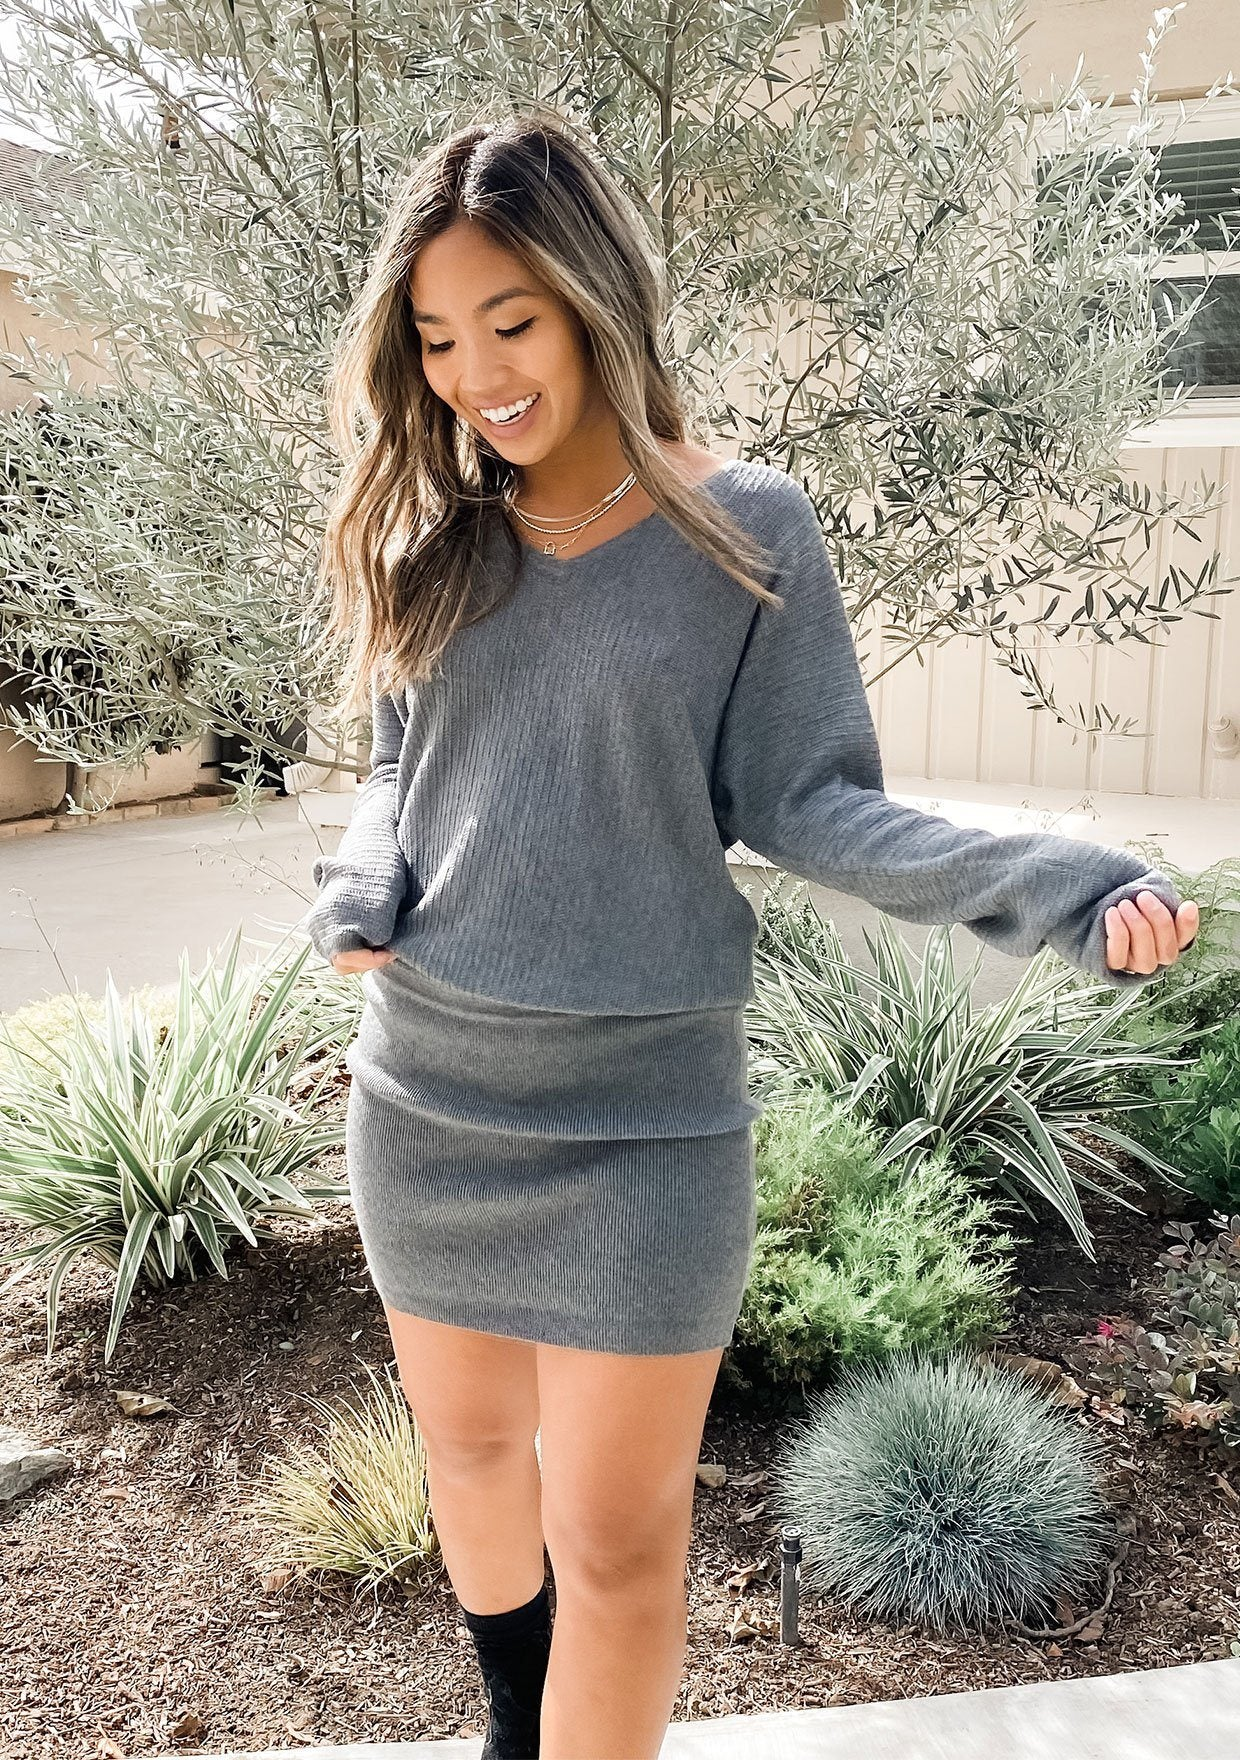 [Color: Heather Charcoal] Soft blouson mini sweater dress. Featuring a loose fitting bust, a fitted banded skirt, and a flattering v neckline. Styled here with boots.